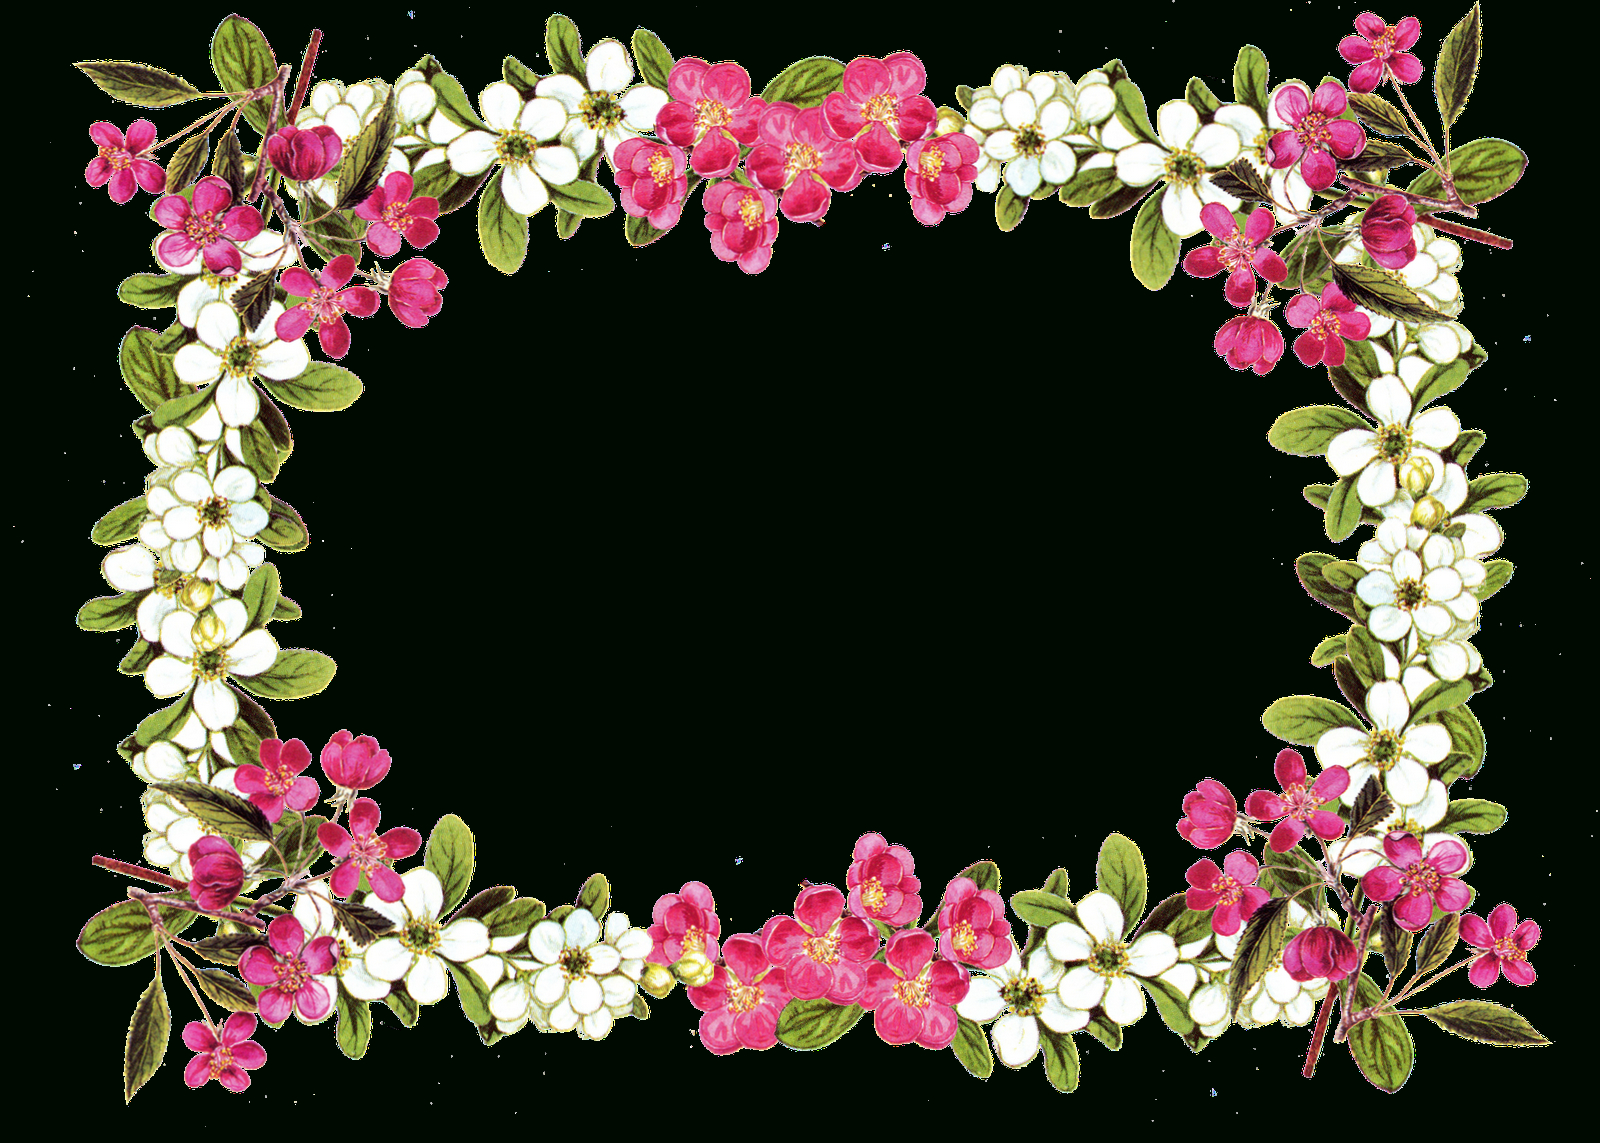 Free Printable Borders Digital Flower Frame Png Free Image - Free Printable Borders